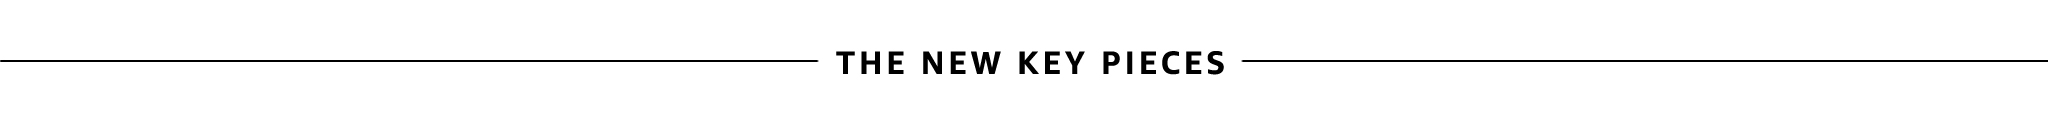 The New Key Pieces